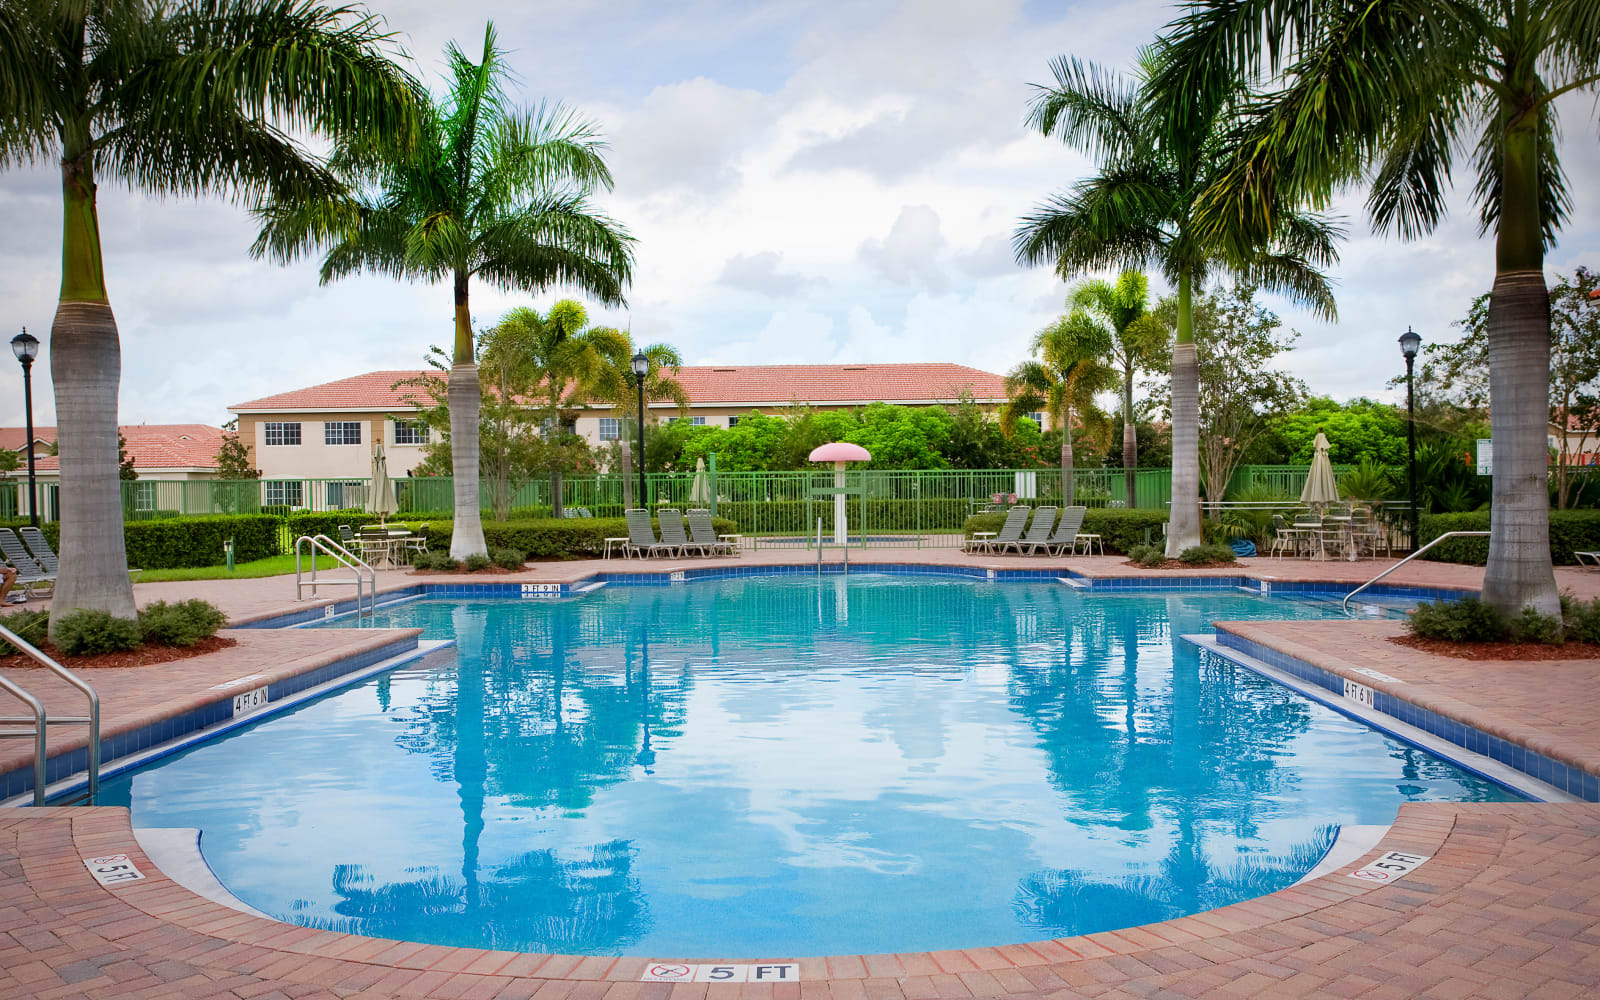 Beautiful pool reflection at Green Cay Village in Boynton Beach, Florida